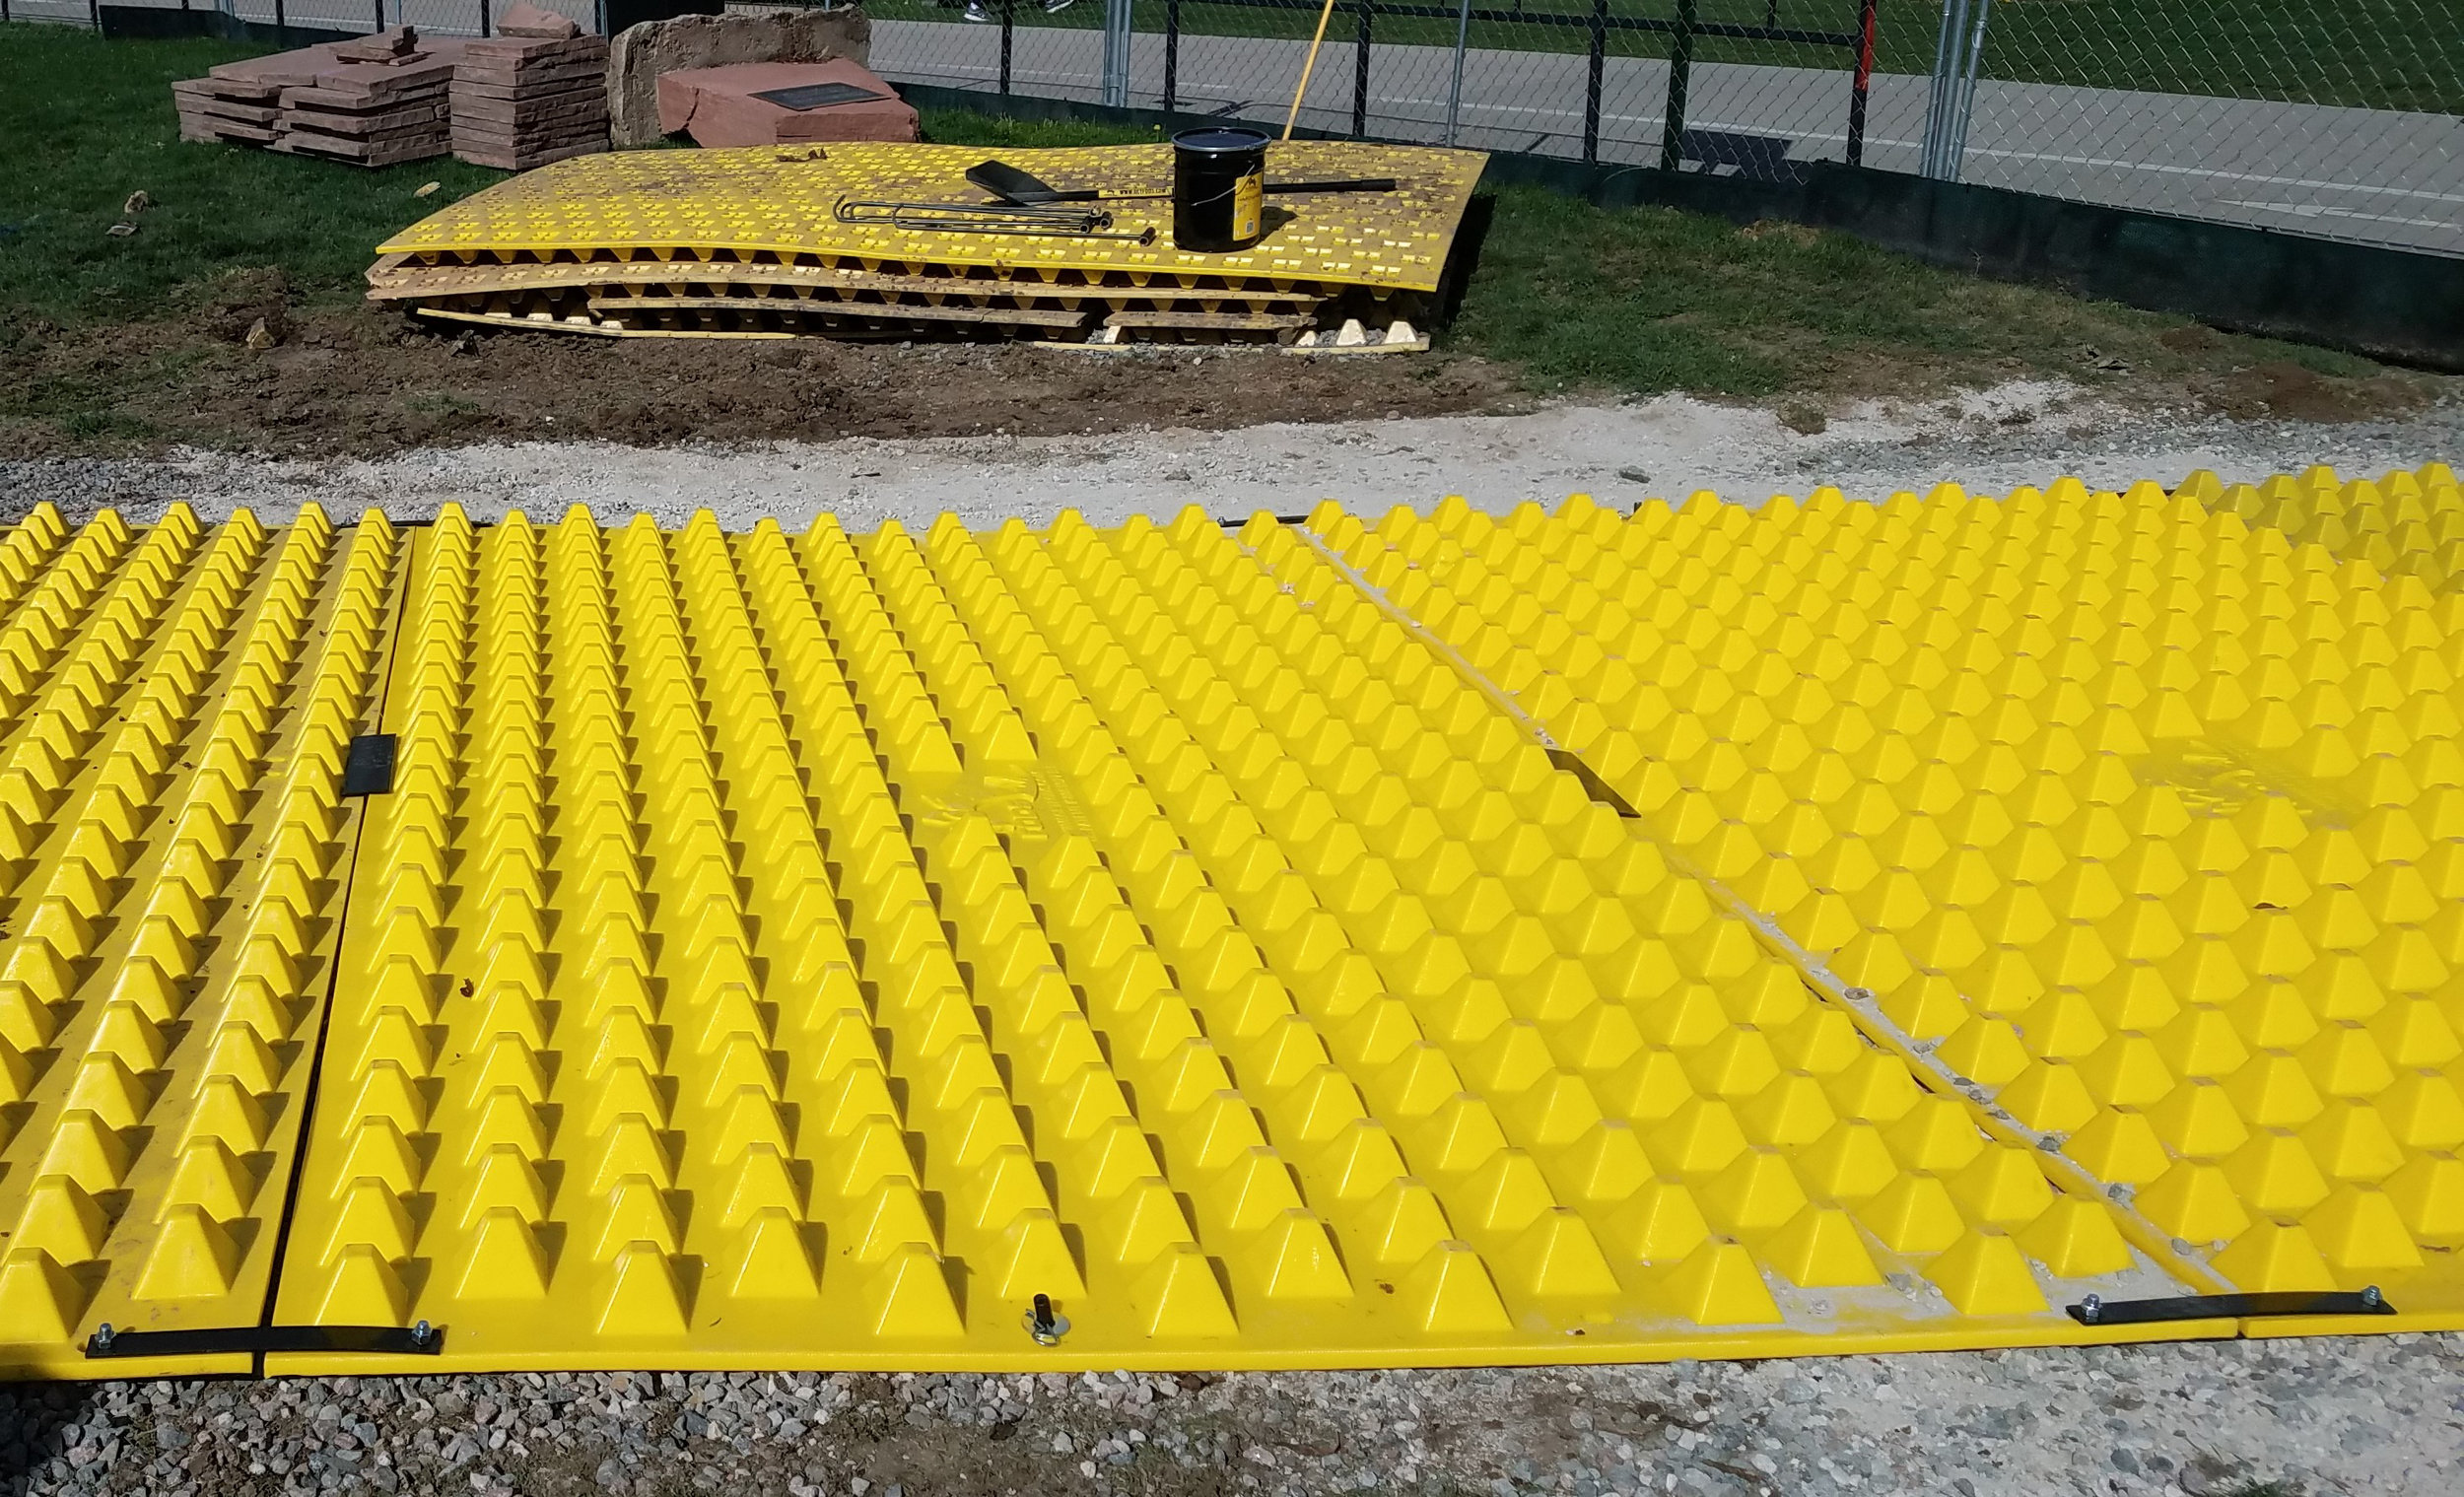 FODS_CUEngineeringBusiness_expansionProjects_FODSTrackoutControlSystem_ConstructionEntranceConstructionExit_mudMats_yellowPlasticConstructionMats_BMPSWPPP.jpg